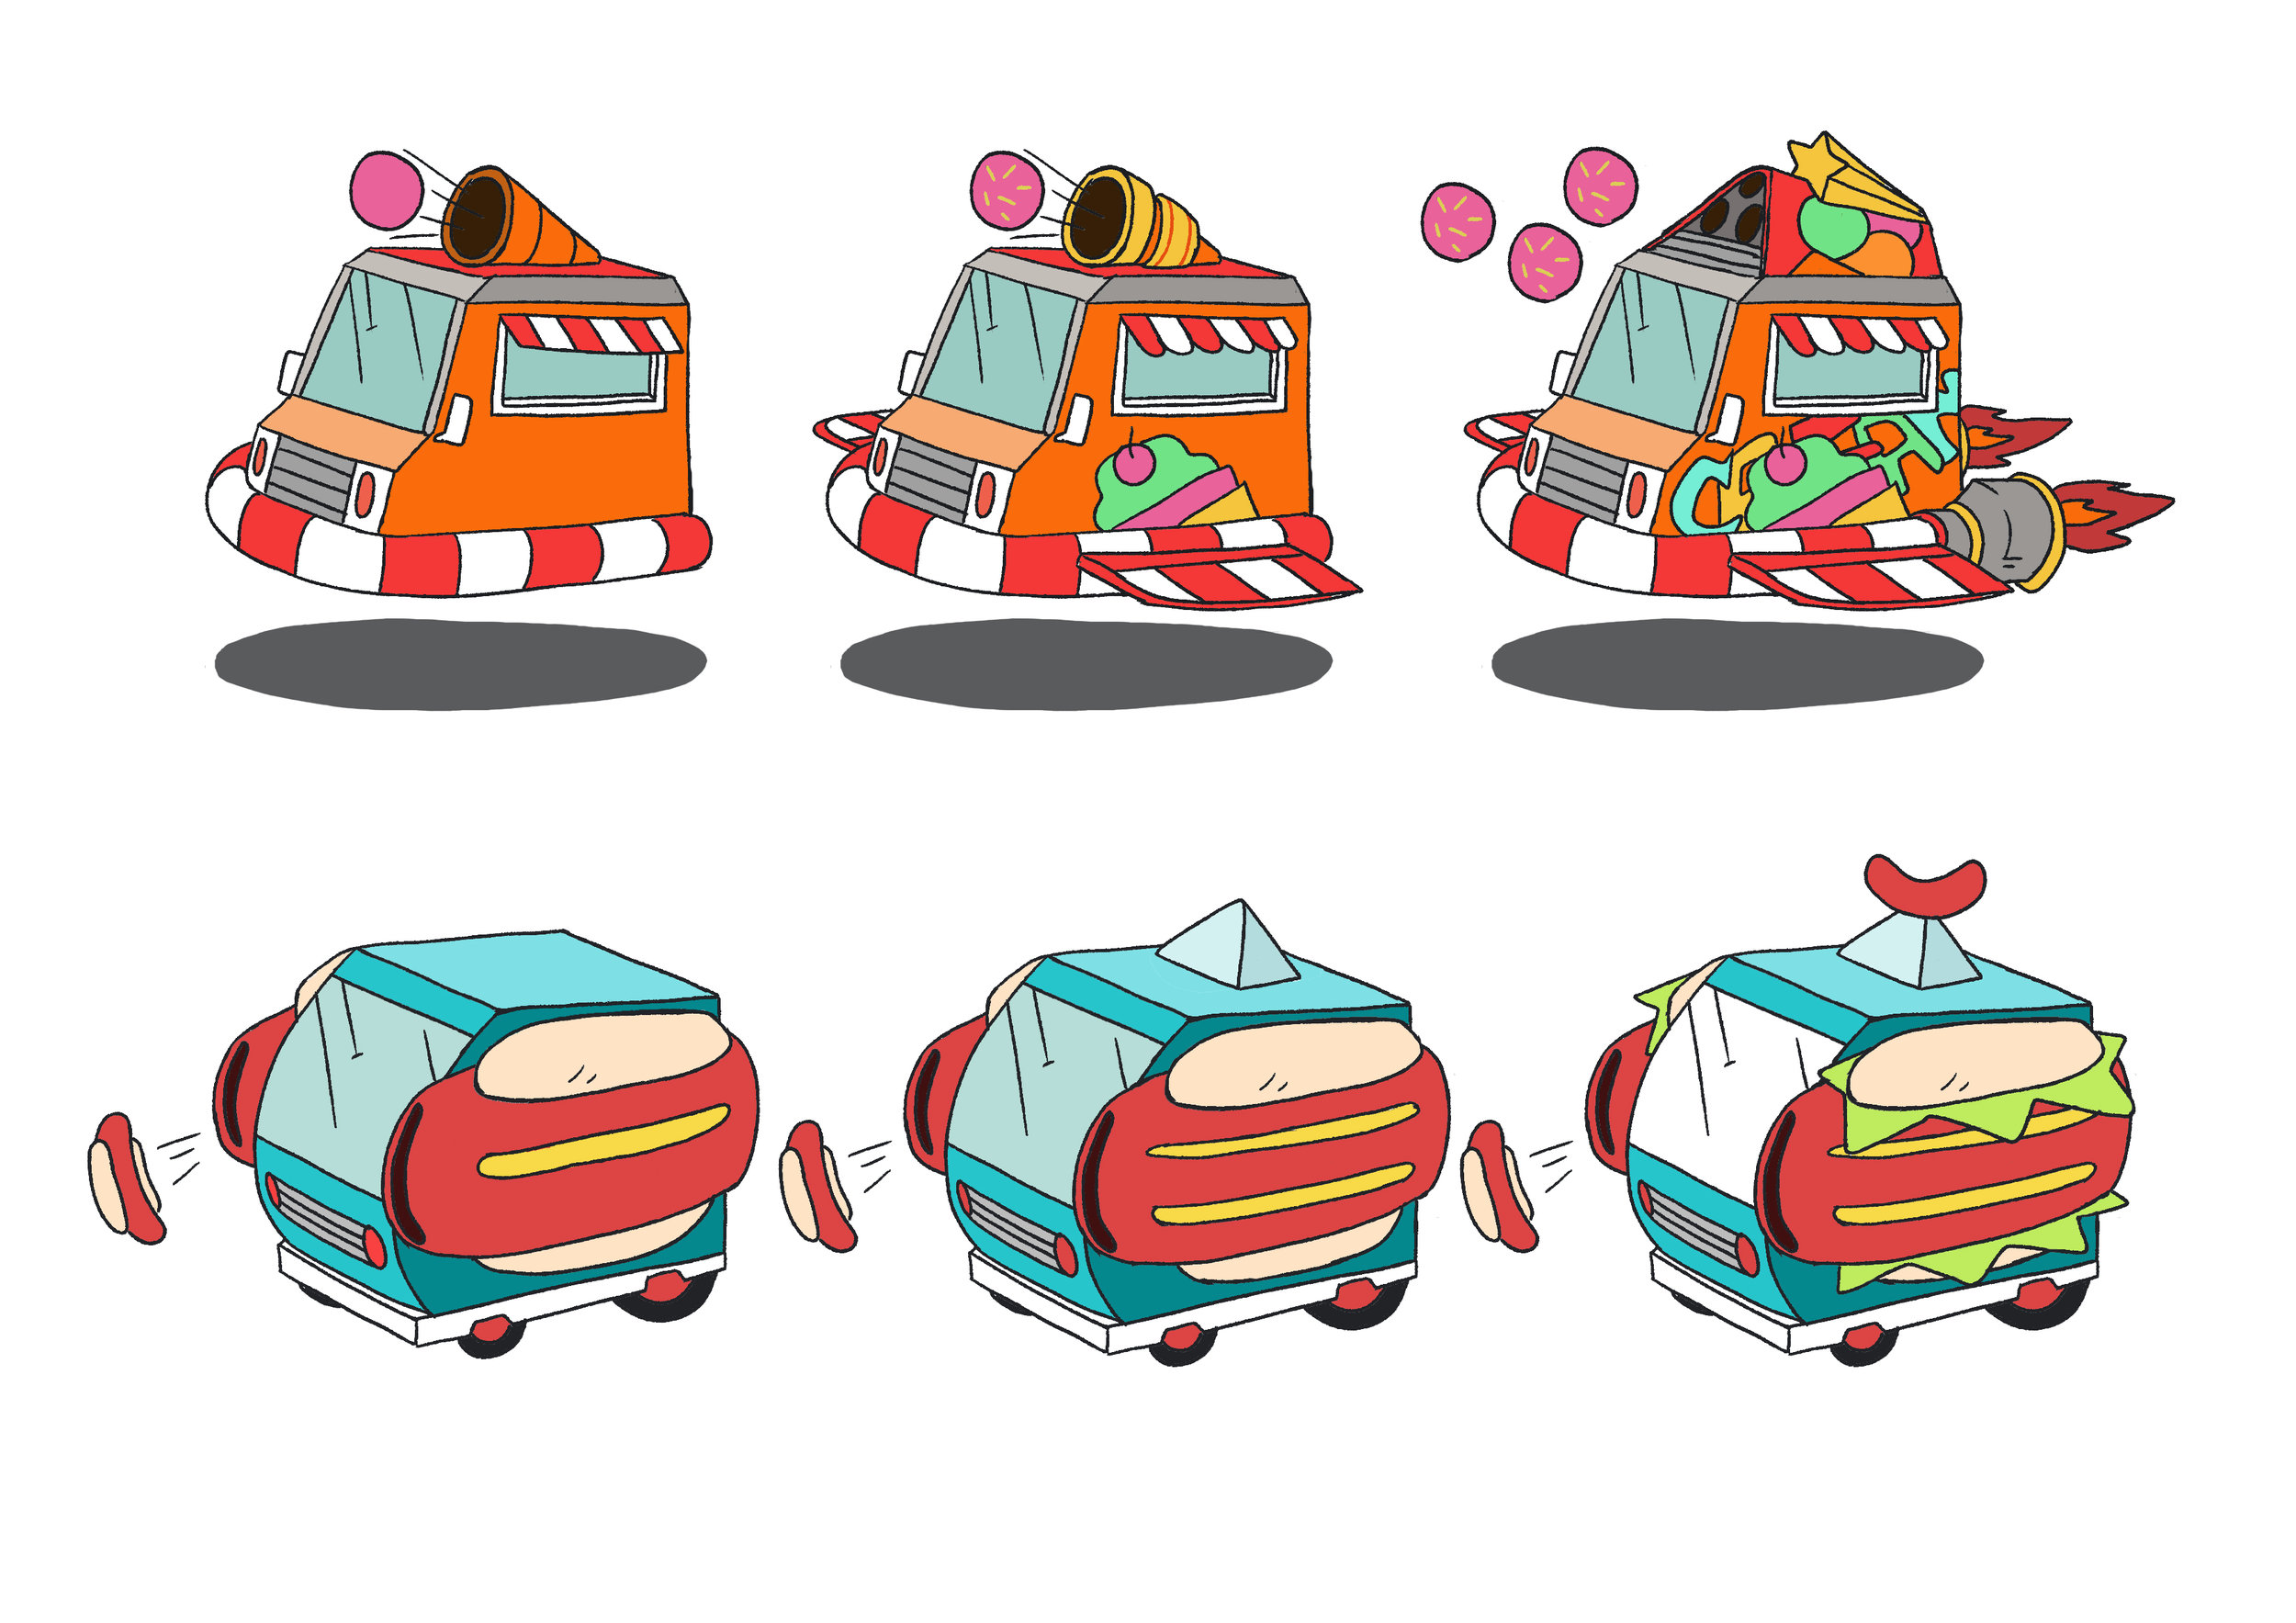 icecream_hotdog trucks.jpg